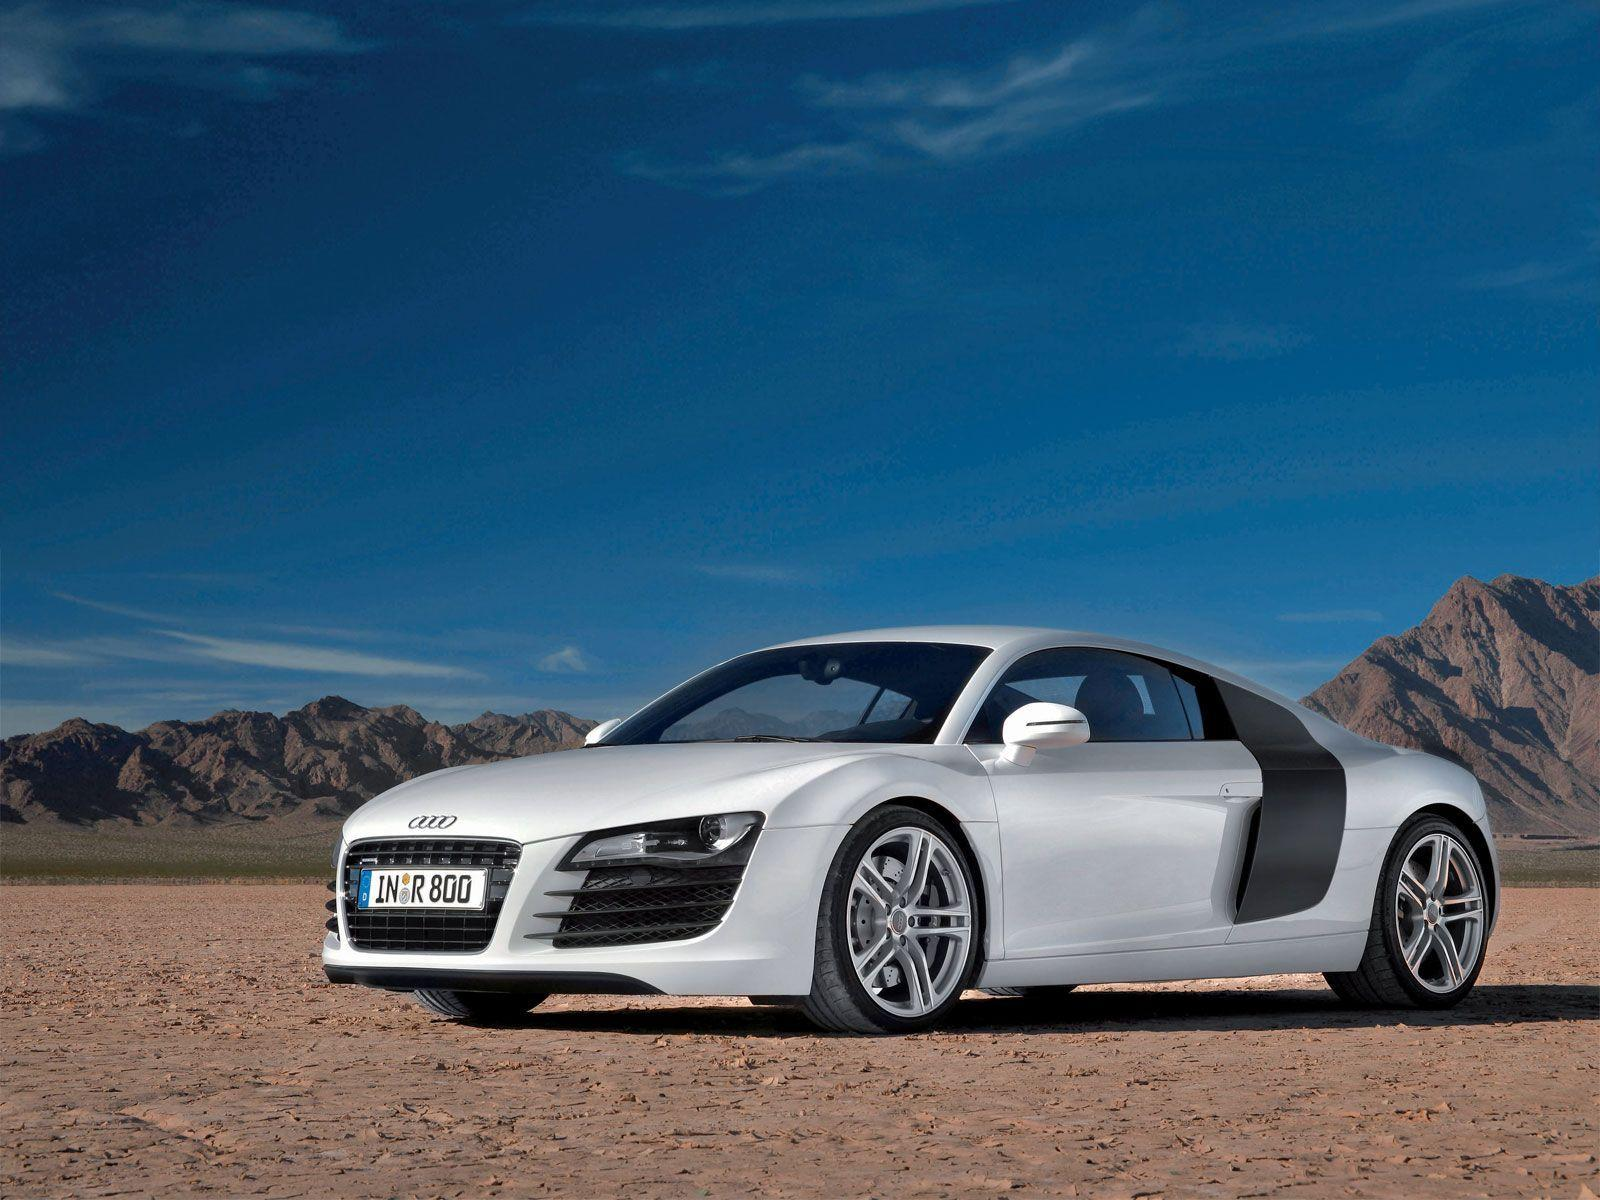 hd car wallpapers for iphone 4 – 1920×1200 High Definition ...